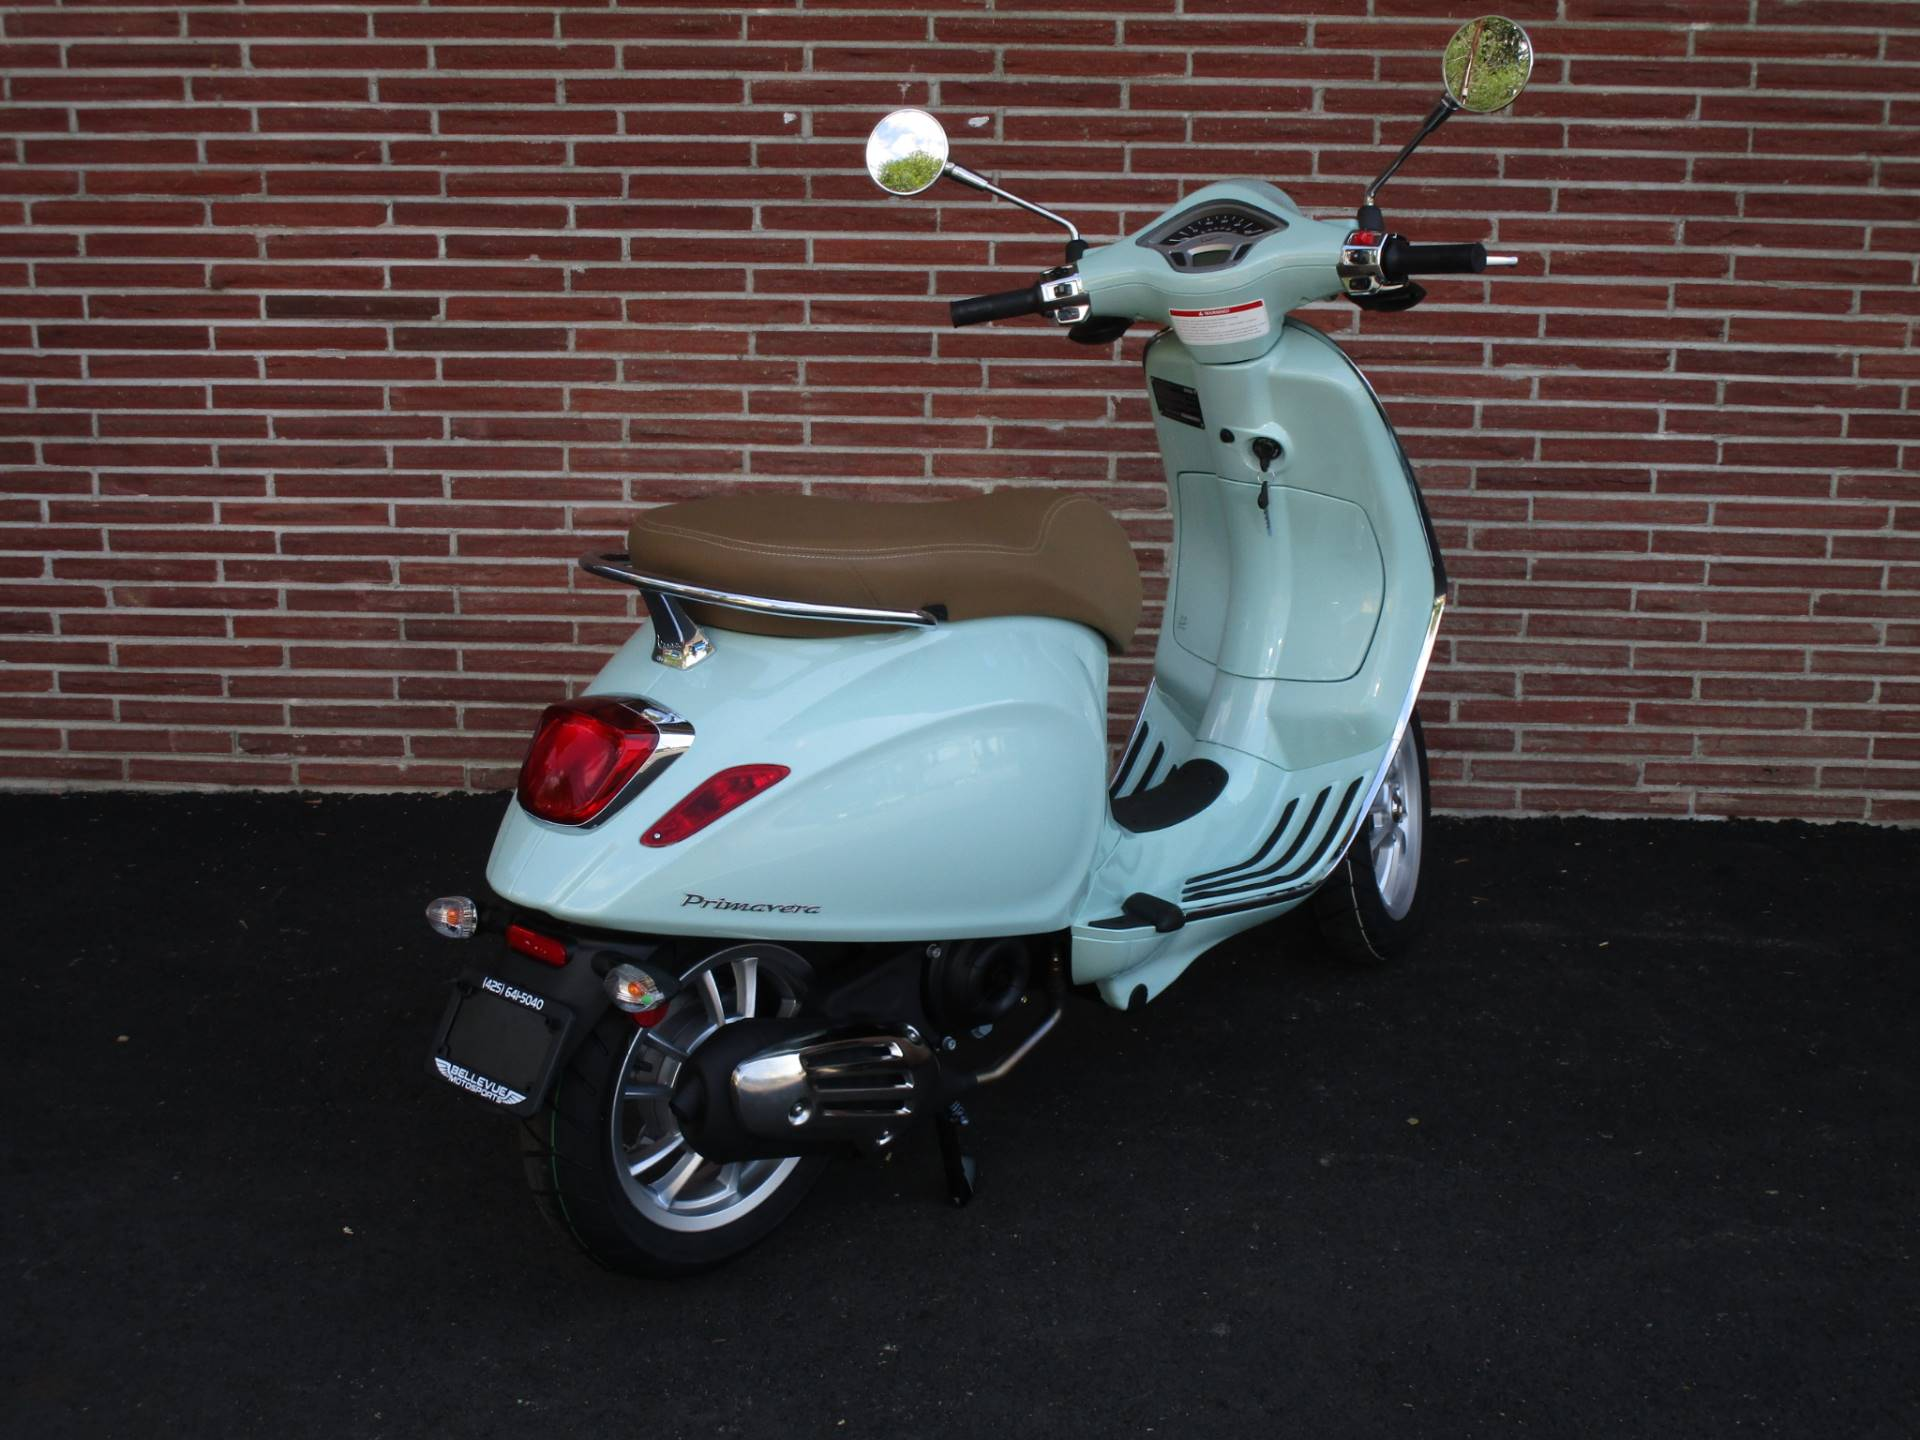 2020 Vespa Primavera 50 in Bellevue, Washington - Photo 8